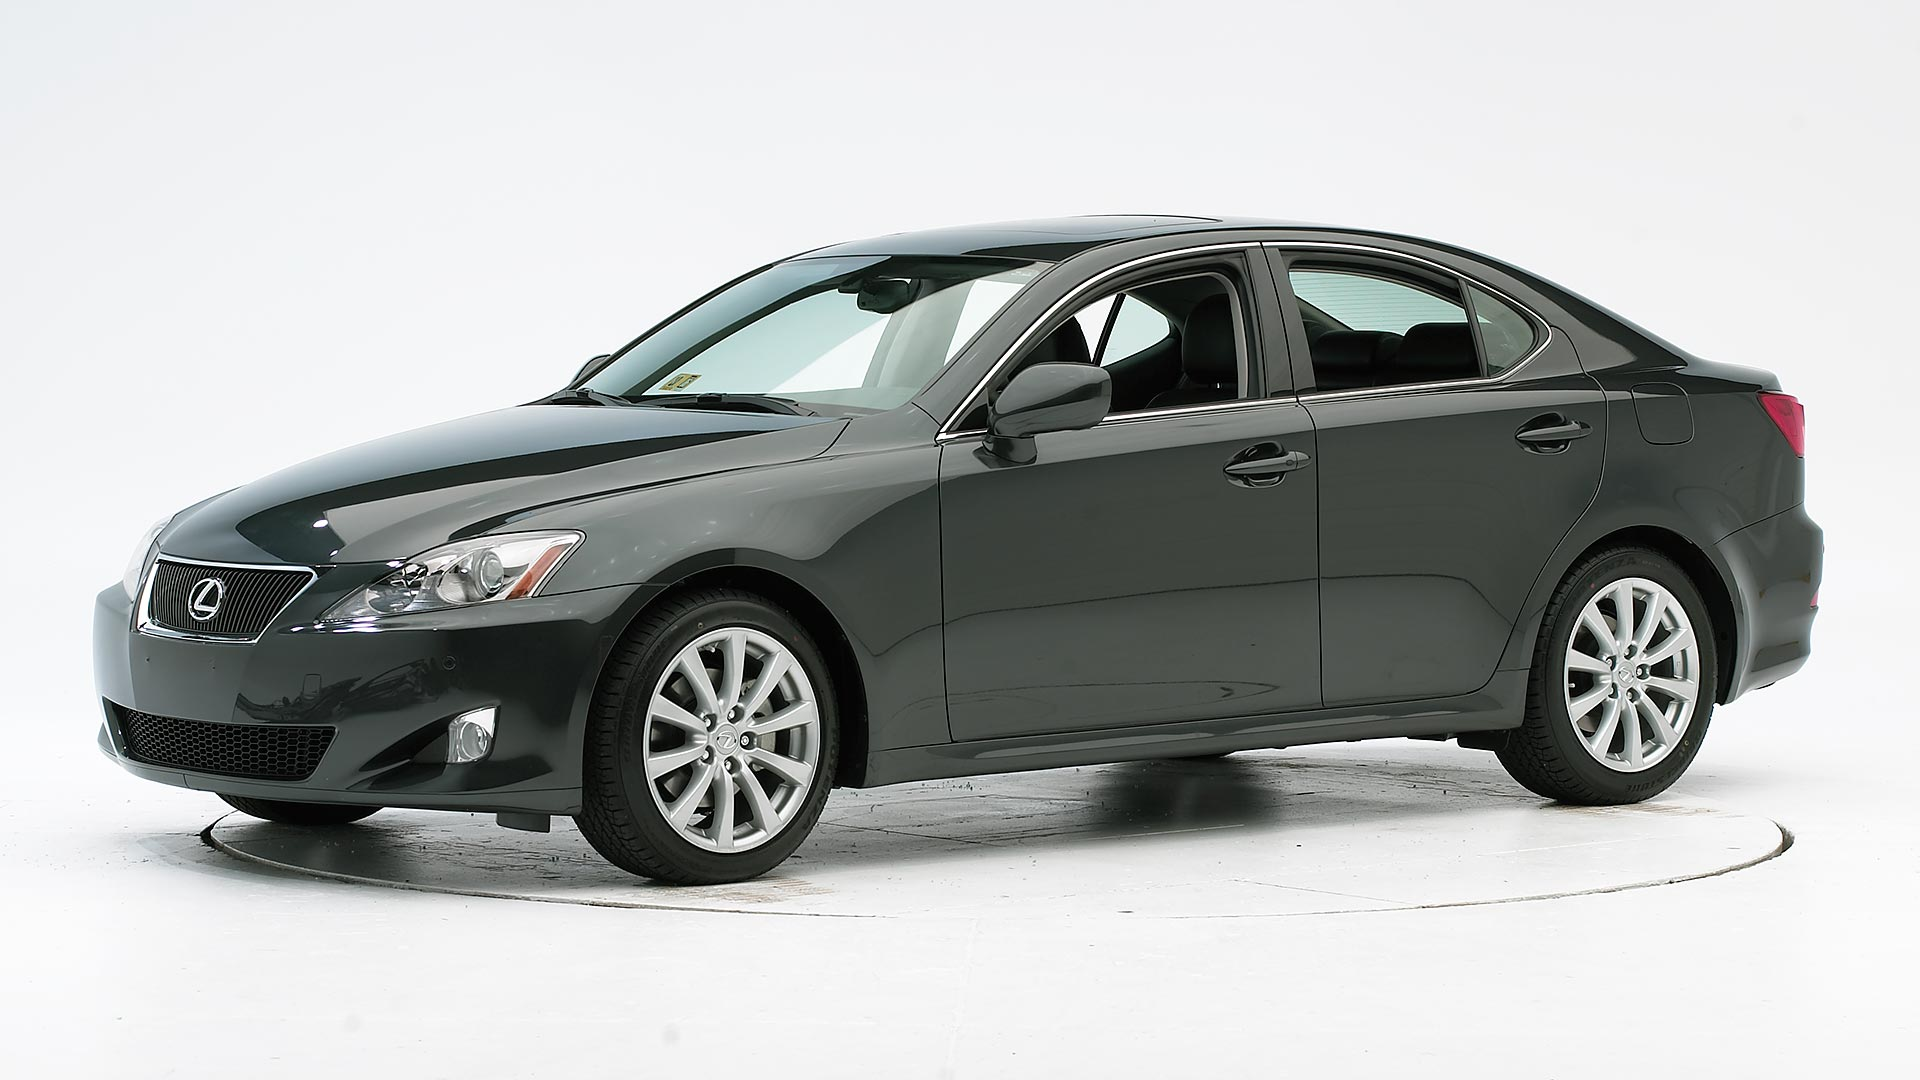 2009 Lexus IS 4-door sedan